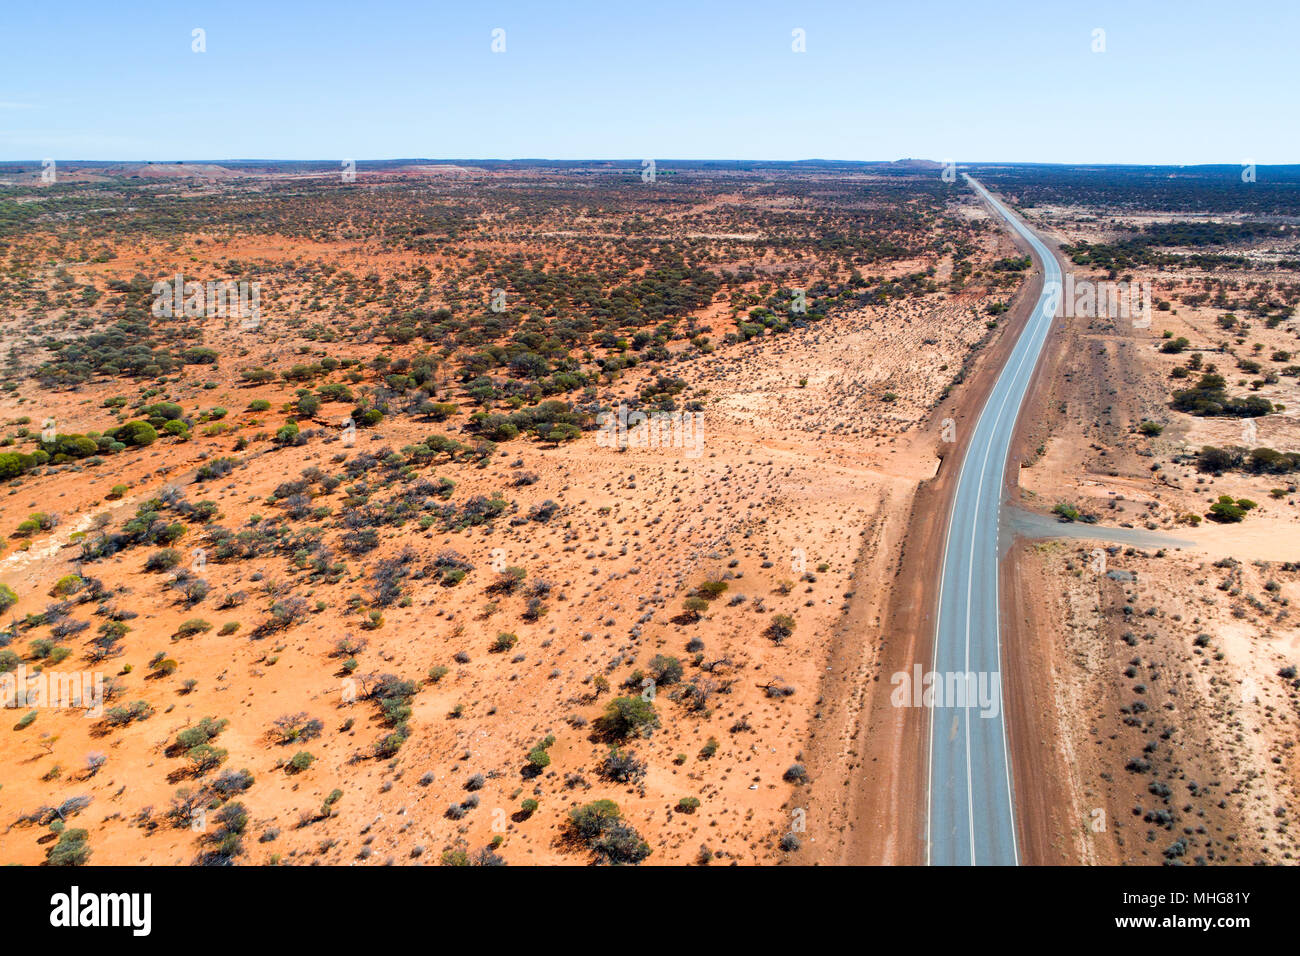 Aerial view of the great northern highway in red landscape, Eastern Goldfields, Western Australia Stock Photo